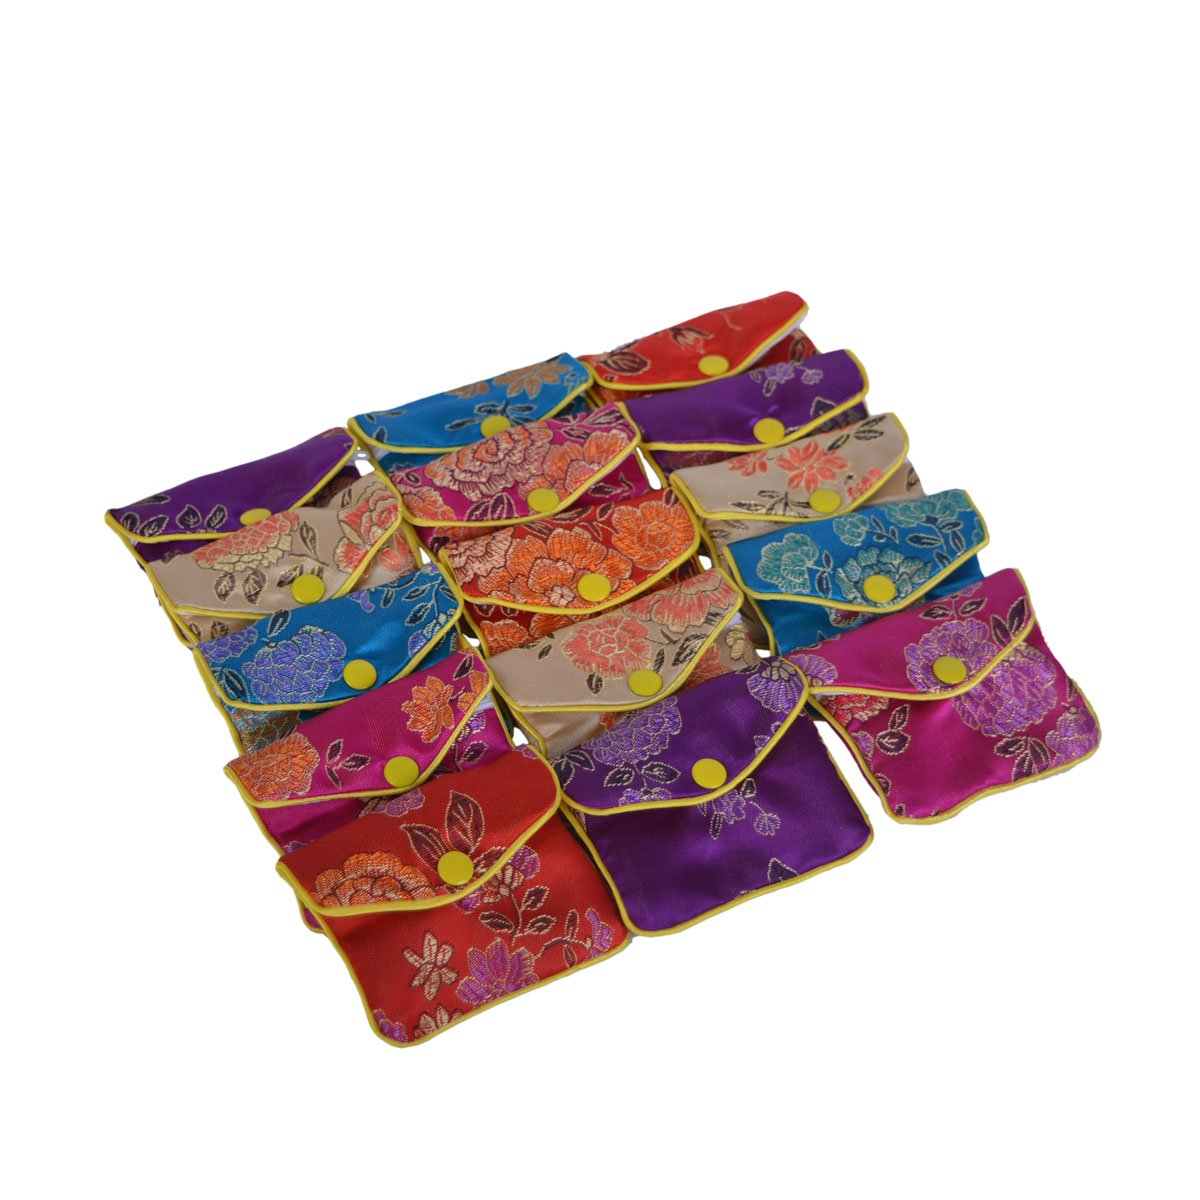 Baitaihem 15 Pack Jewelry Purse Pouch Gift Bags Chinese Silk Style Brocade Embroidered Bag, Multiple Colors(Small) MJ002